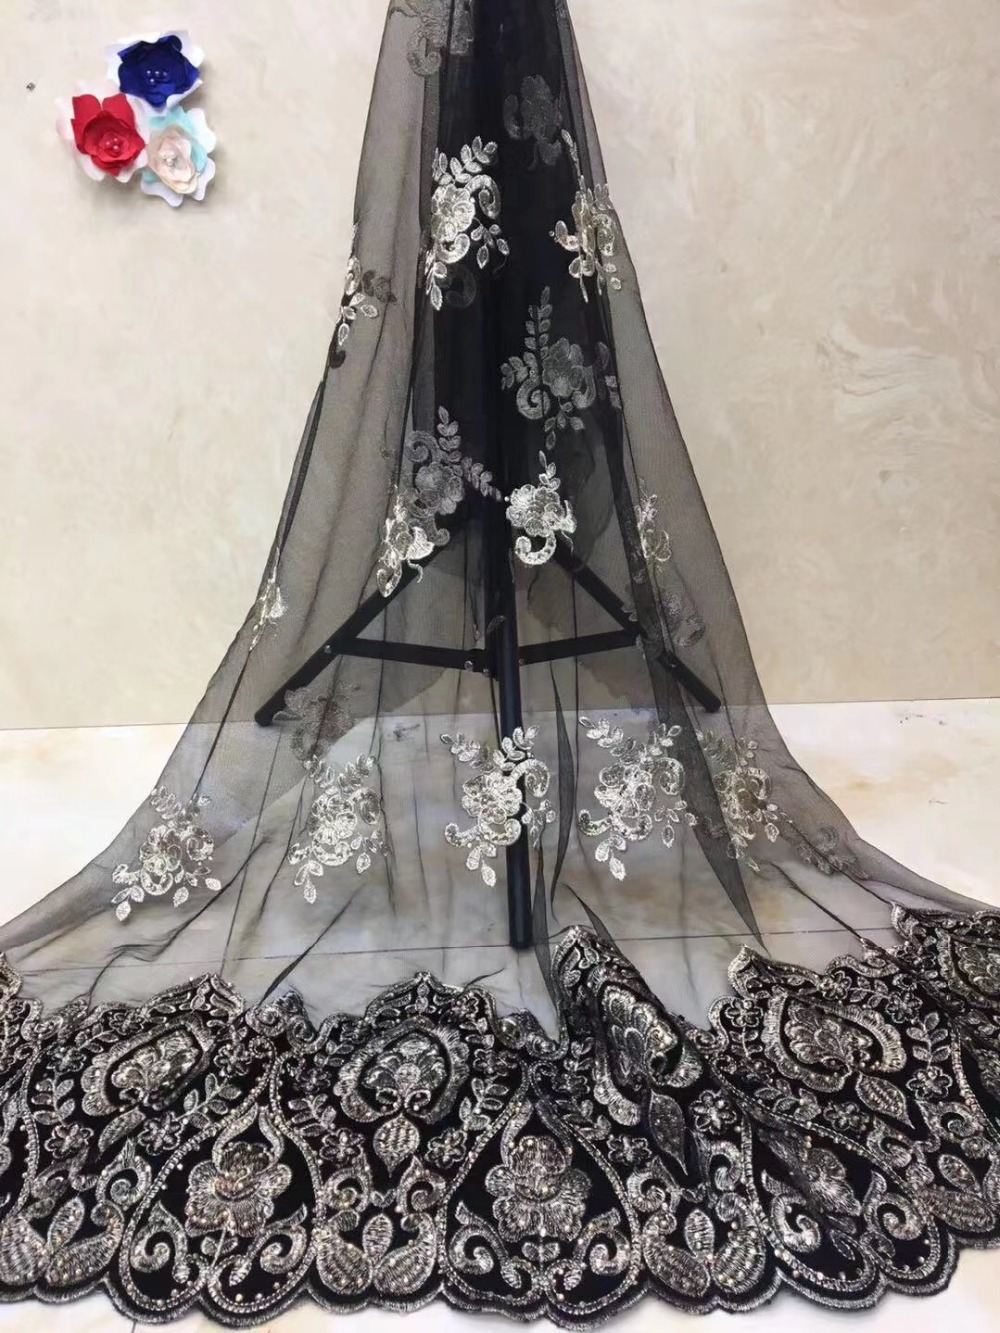 High quality velvet African lace 2019 latest design French lace fabric for weddings and parties Nigerian fashion mesh laceHigh quality velvet African lace 2019 latest design French lace fabric for weddings and parties Nigerian fashion mesh lace